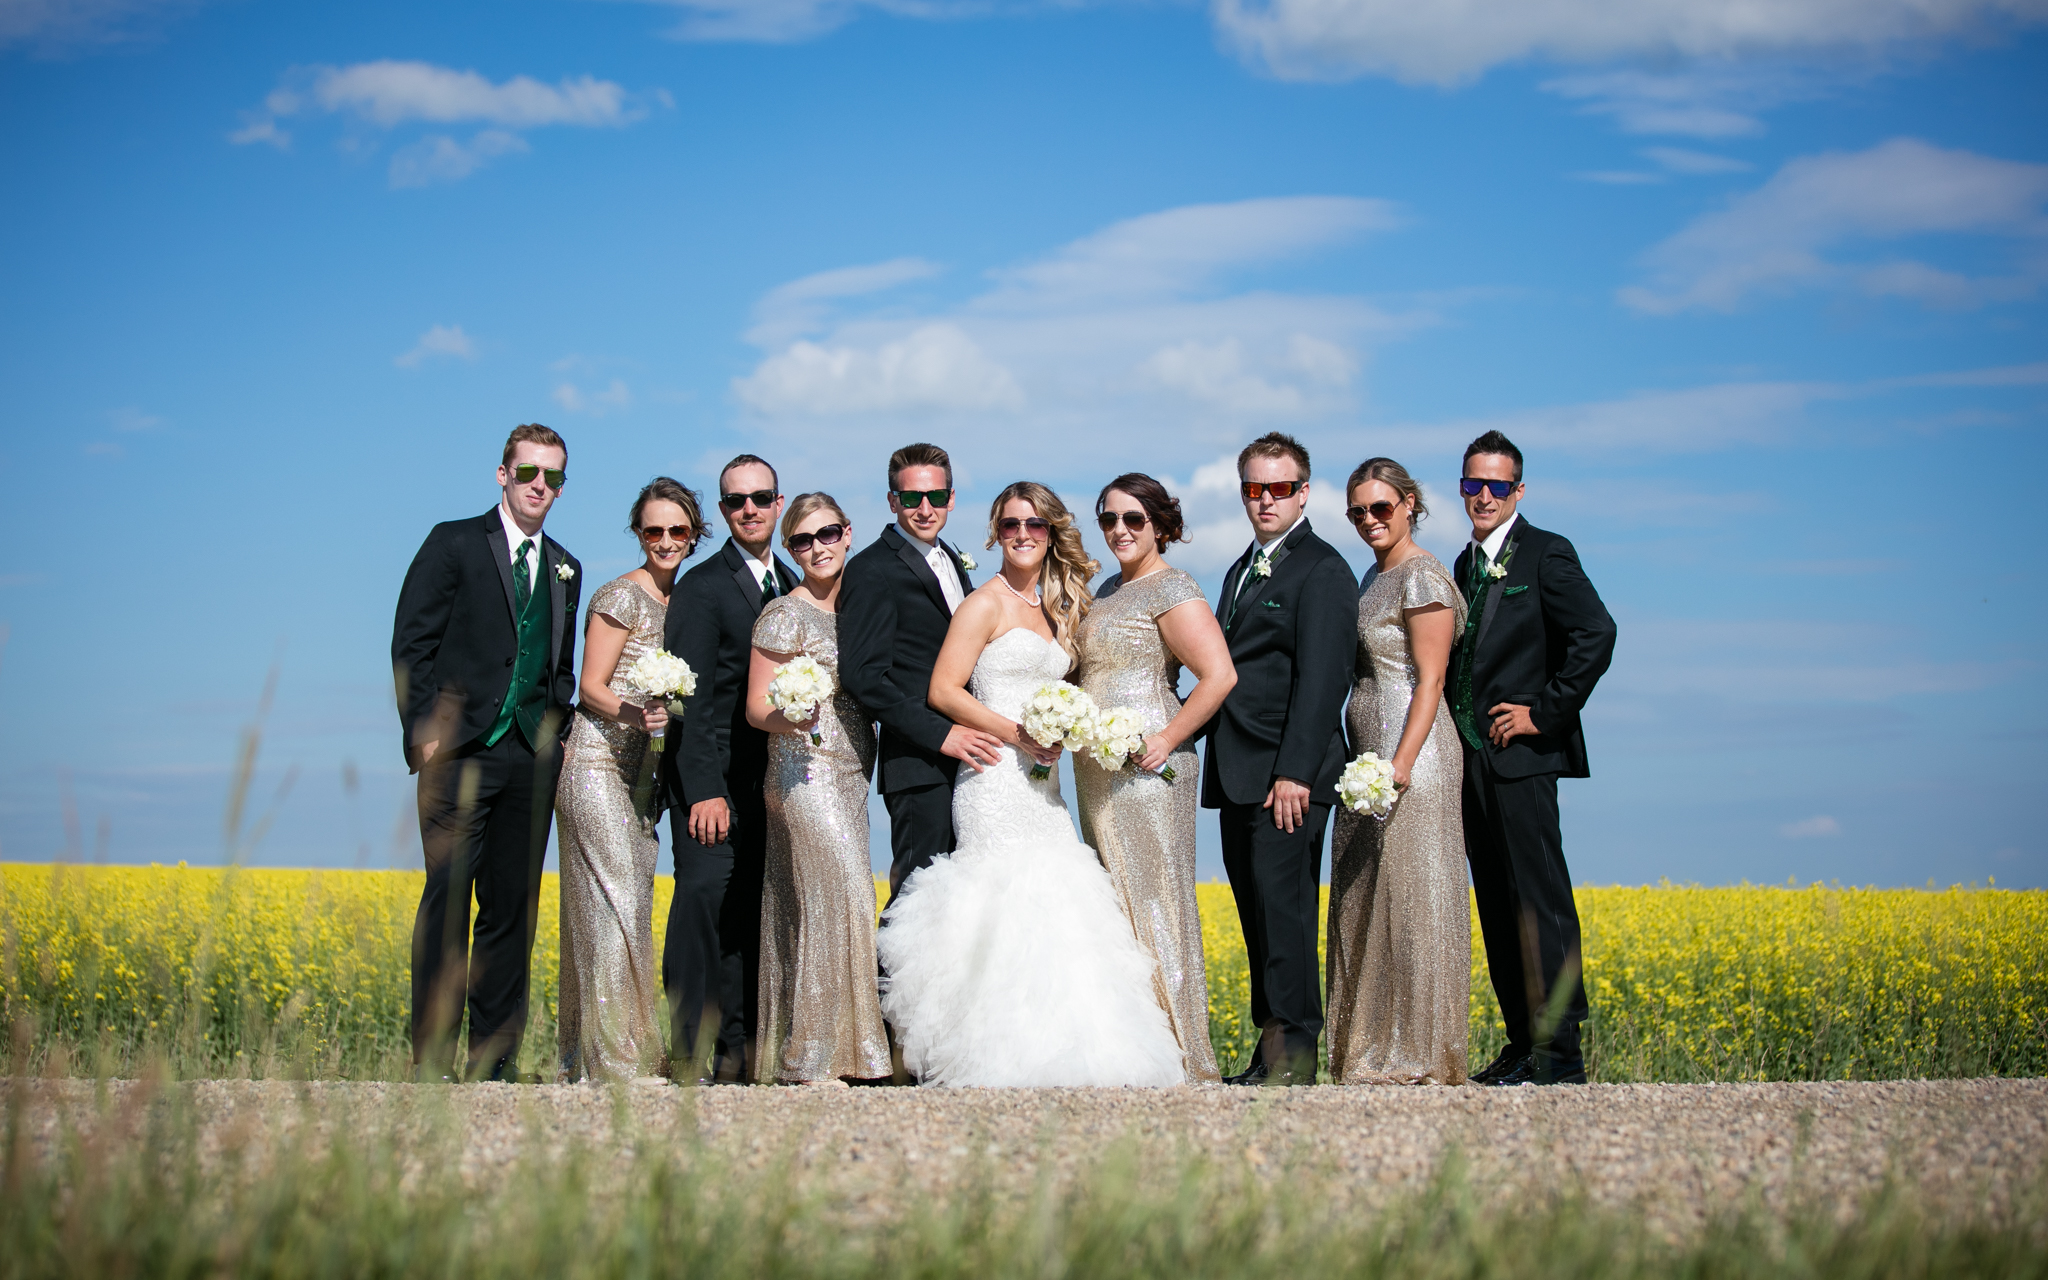 morinville-westlock-wedding-gatsby-yeg-wedding